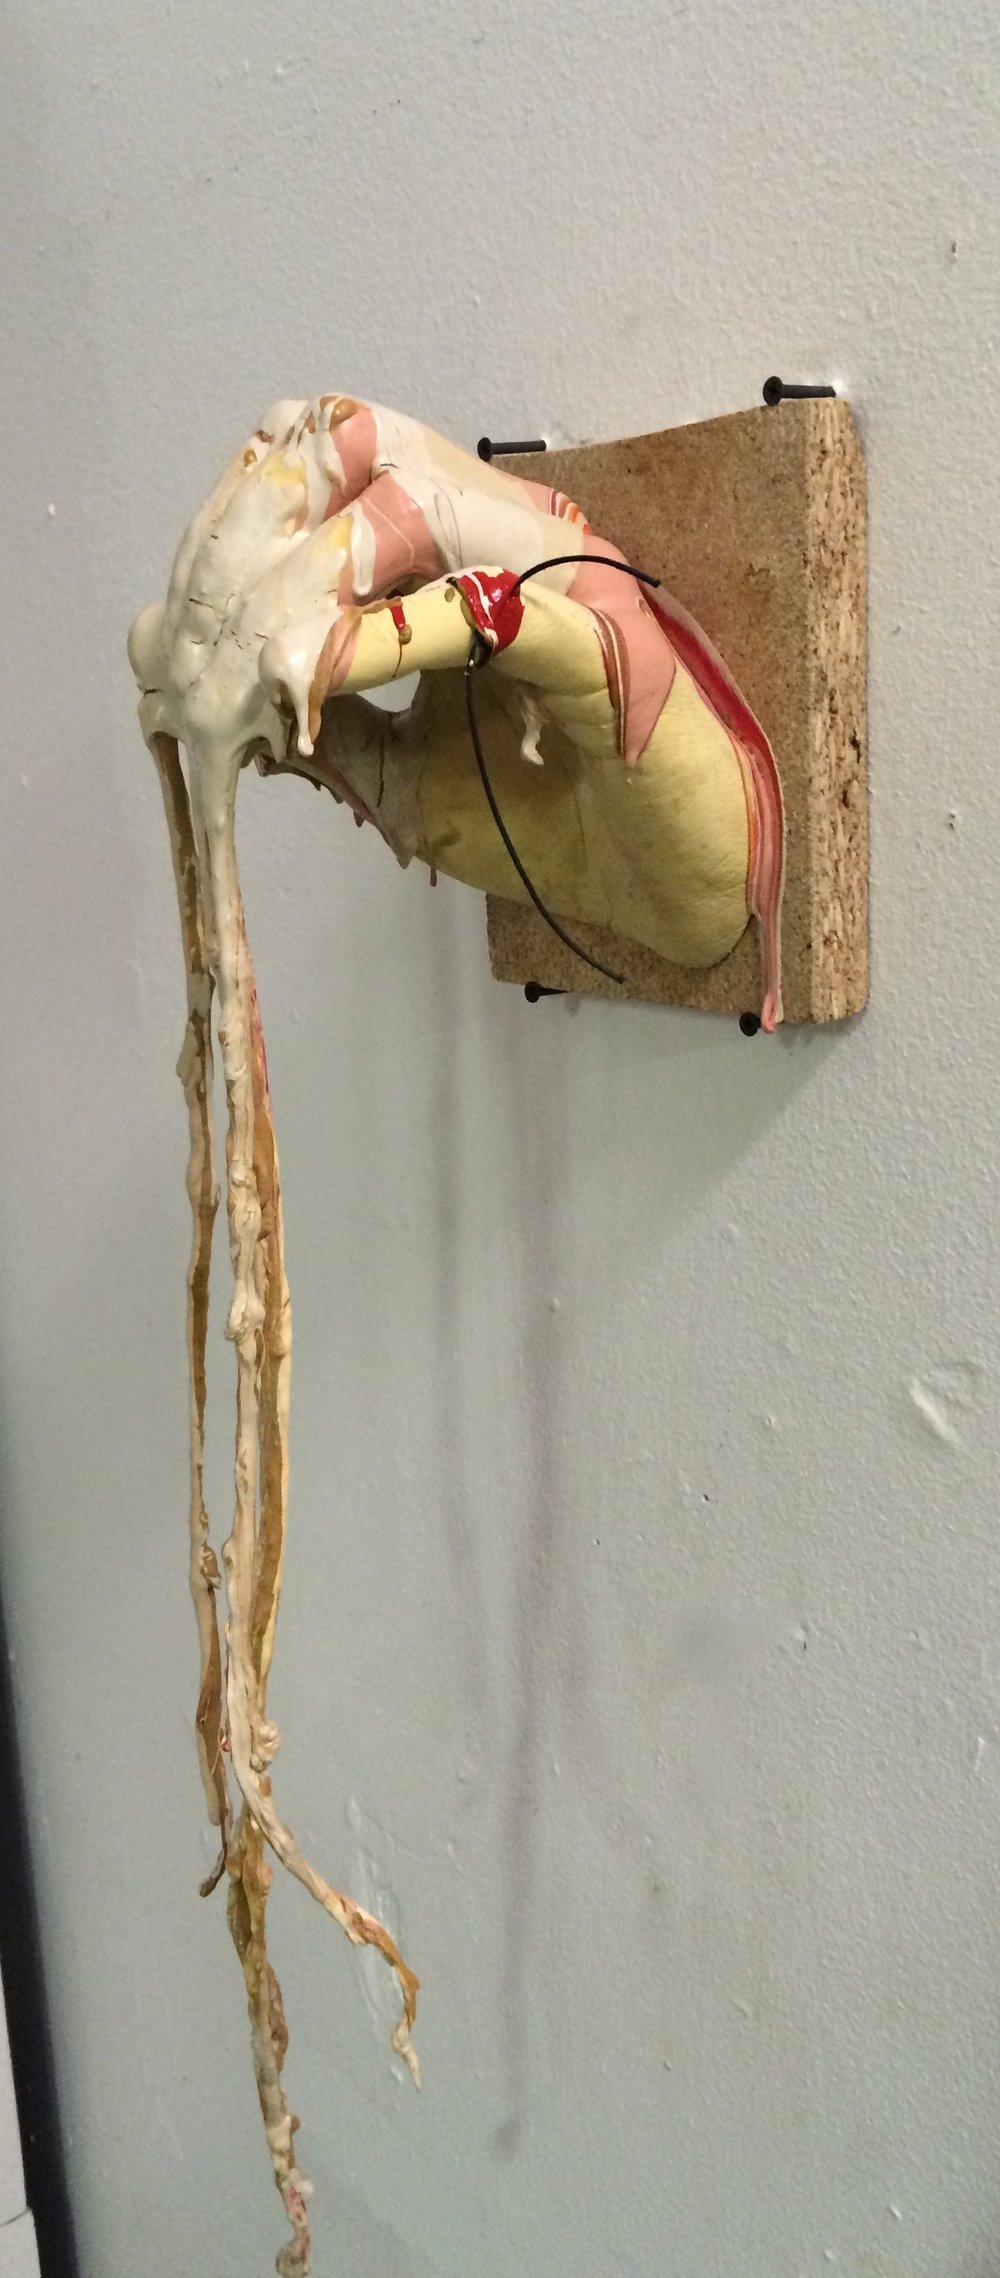 Garret Koch, Casting for Meaning, Fall 2015, Life-casting project, plaster, paint, string